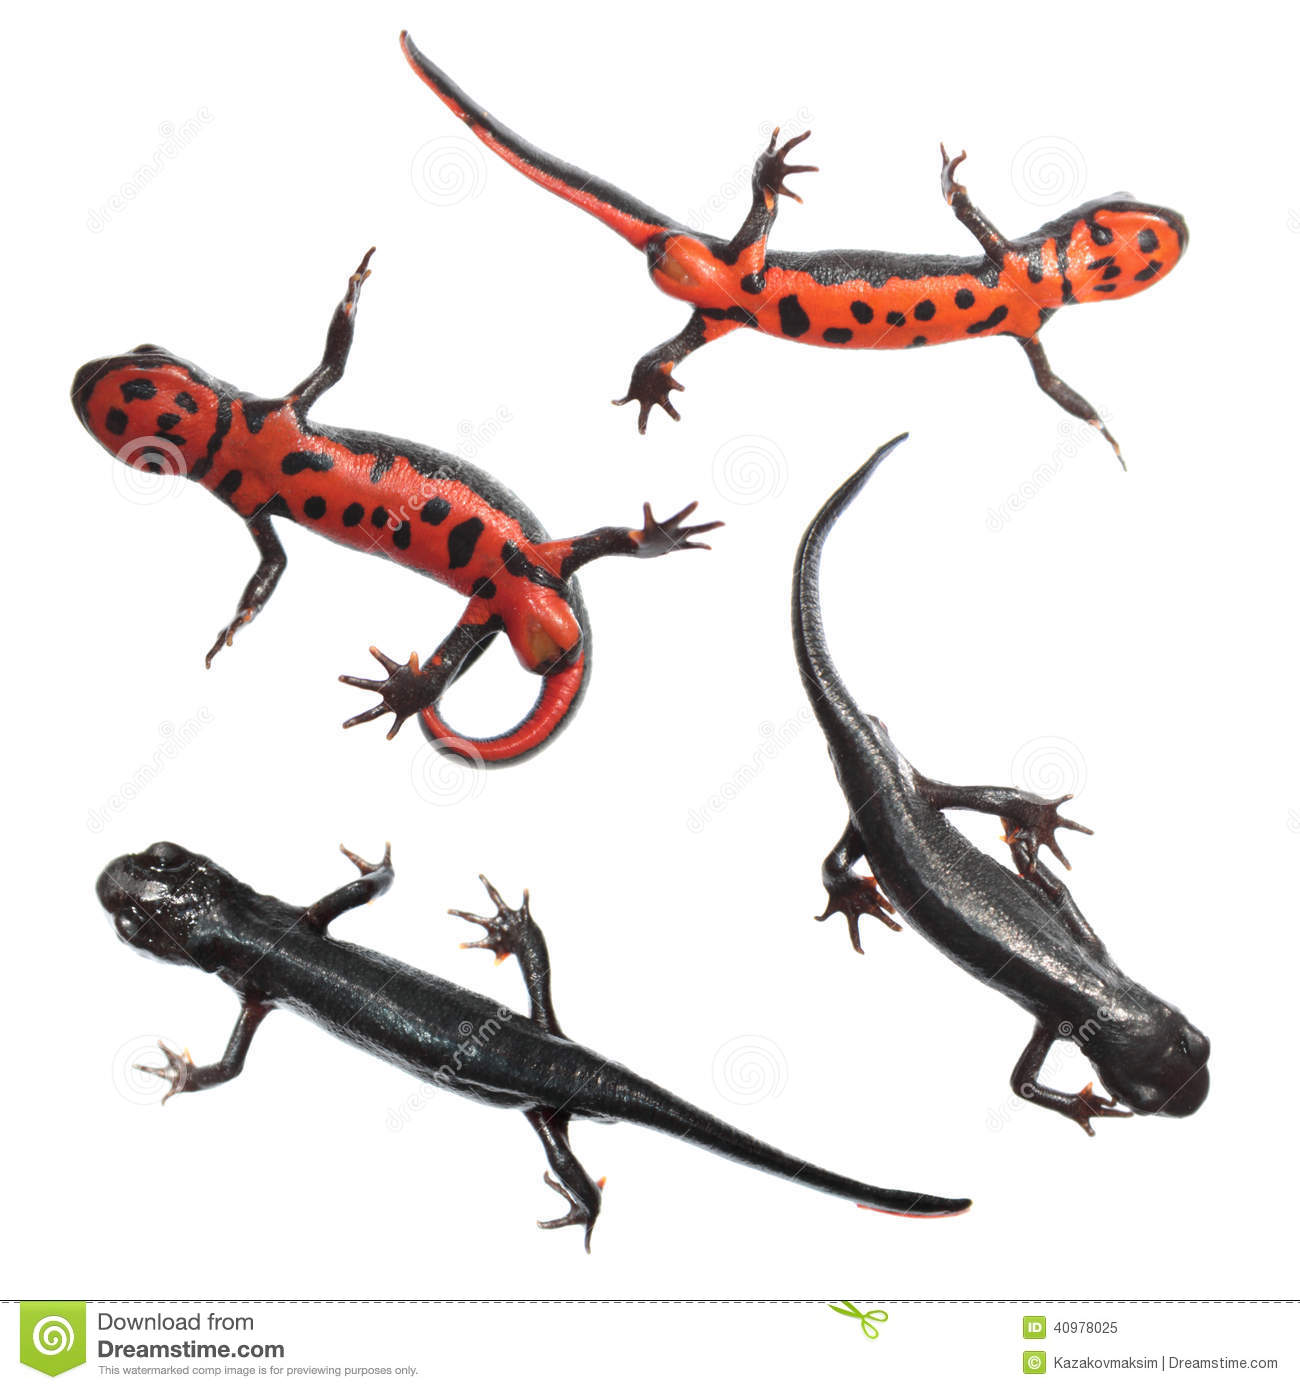 Red Bellied Newt clipart #13, Download drawings